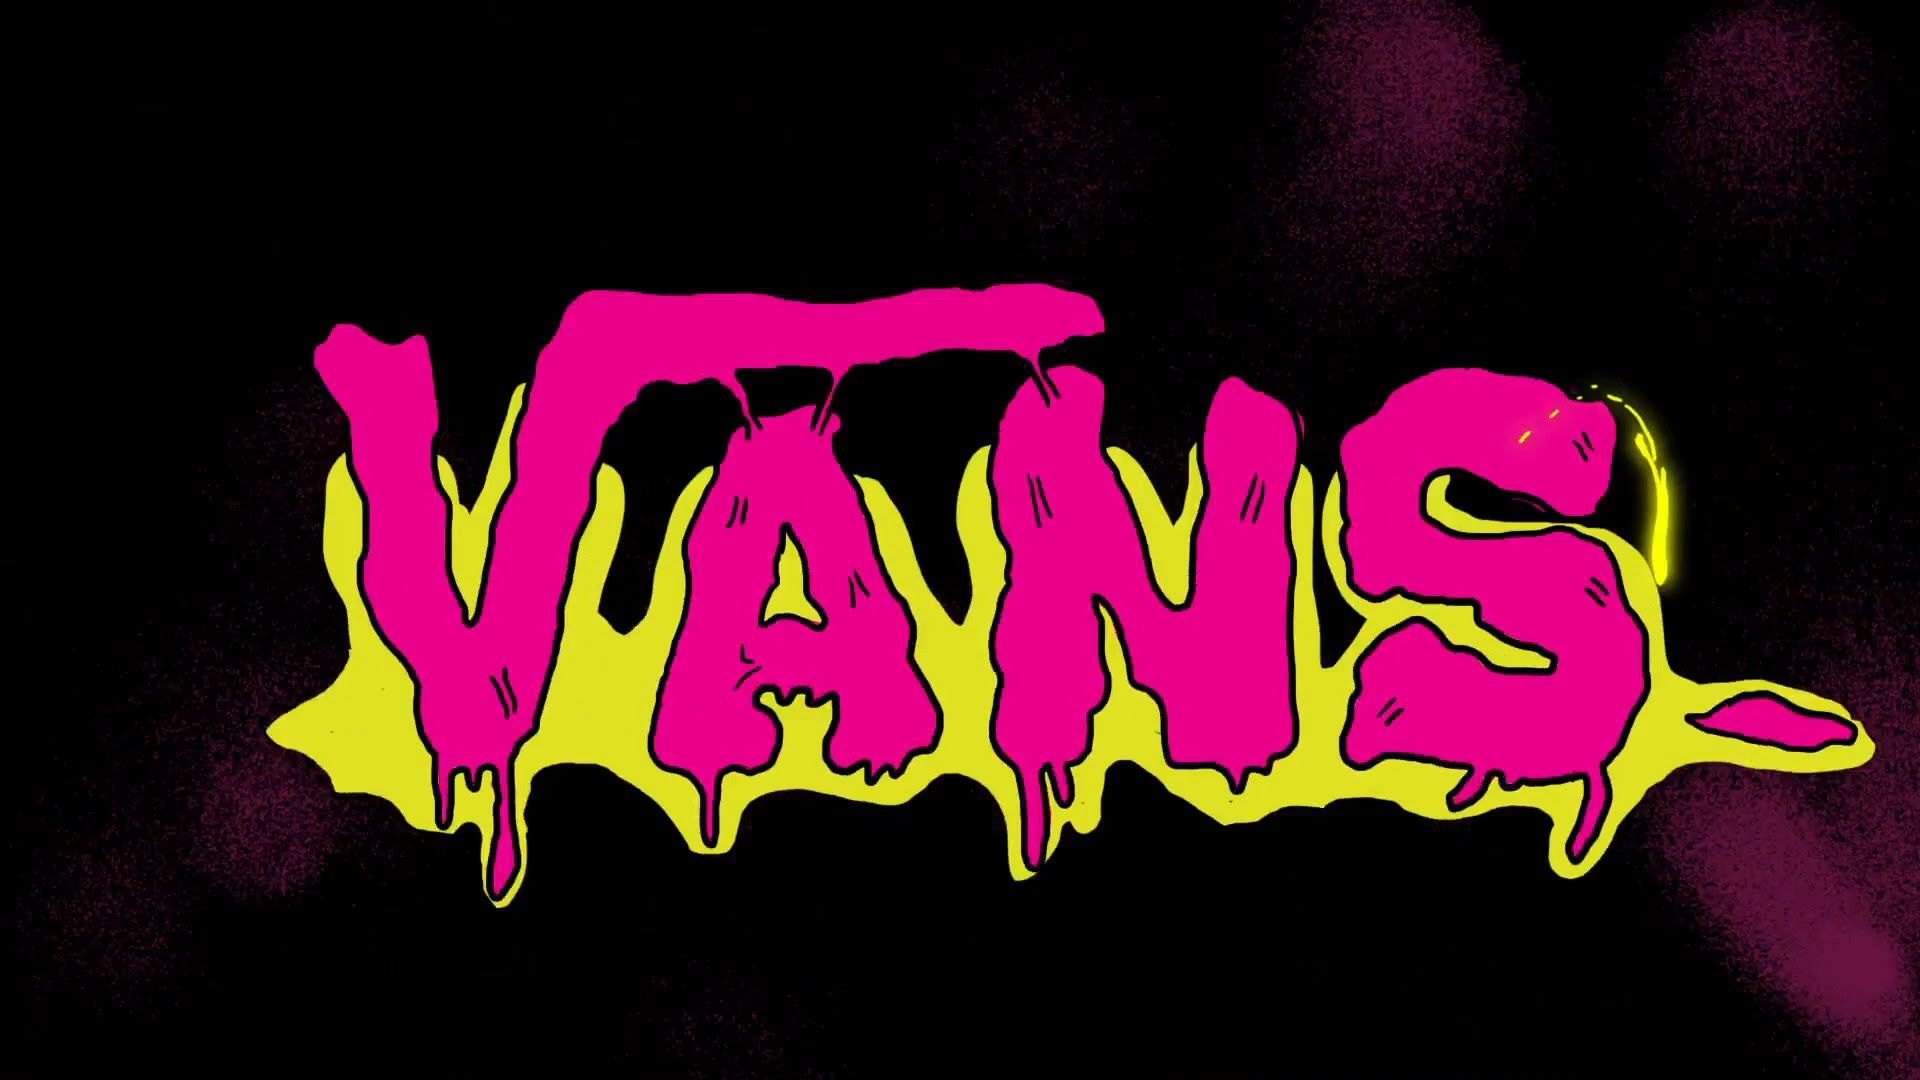 Vans Logo Wallpapers Hd Jpg 1 920 1 080 Pixels With Images